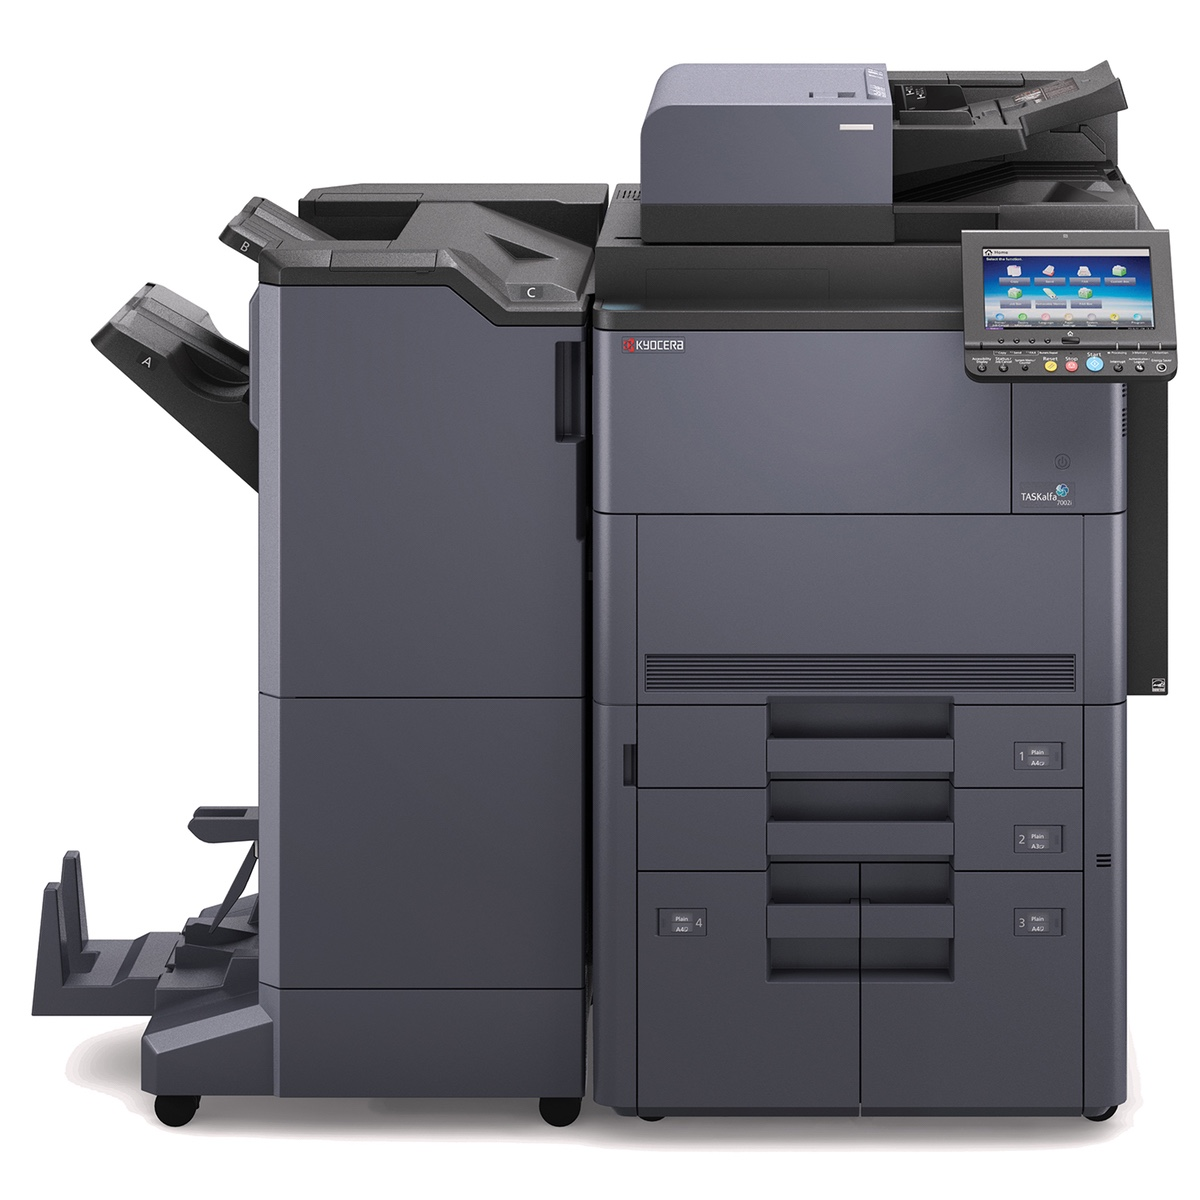 kyocera copy machine manual